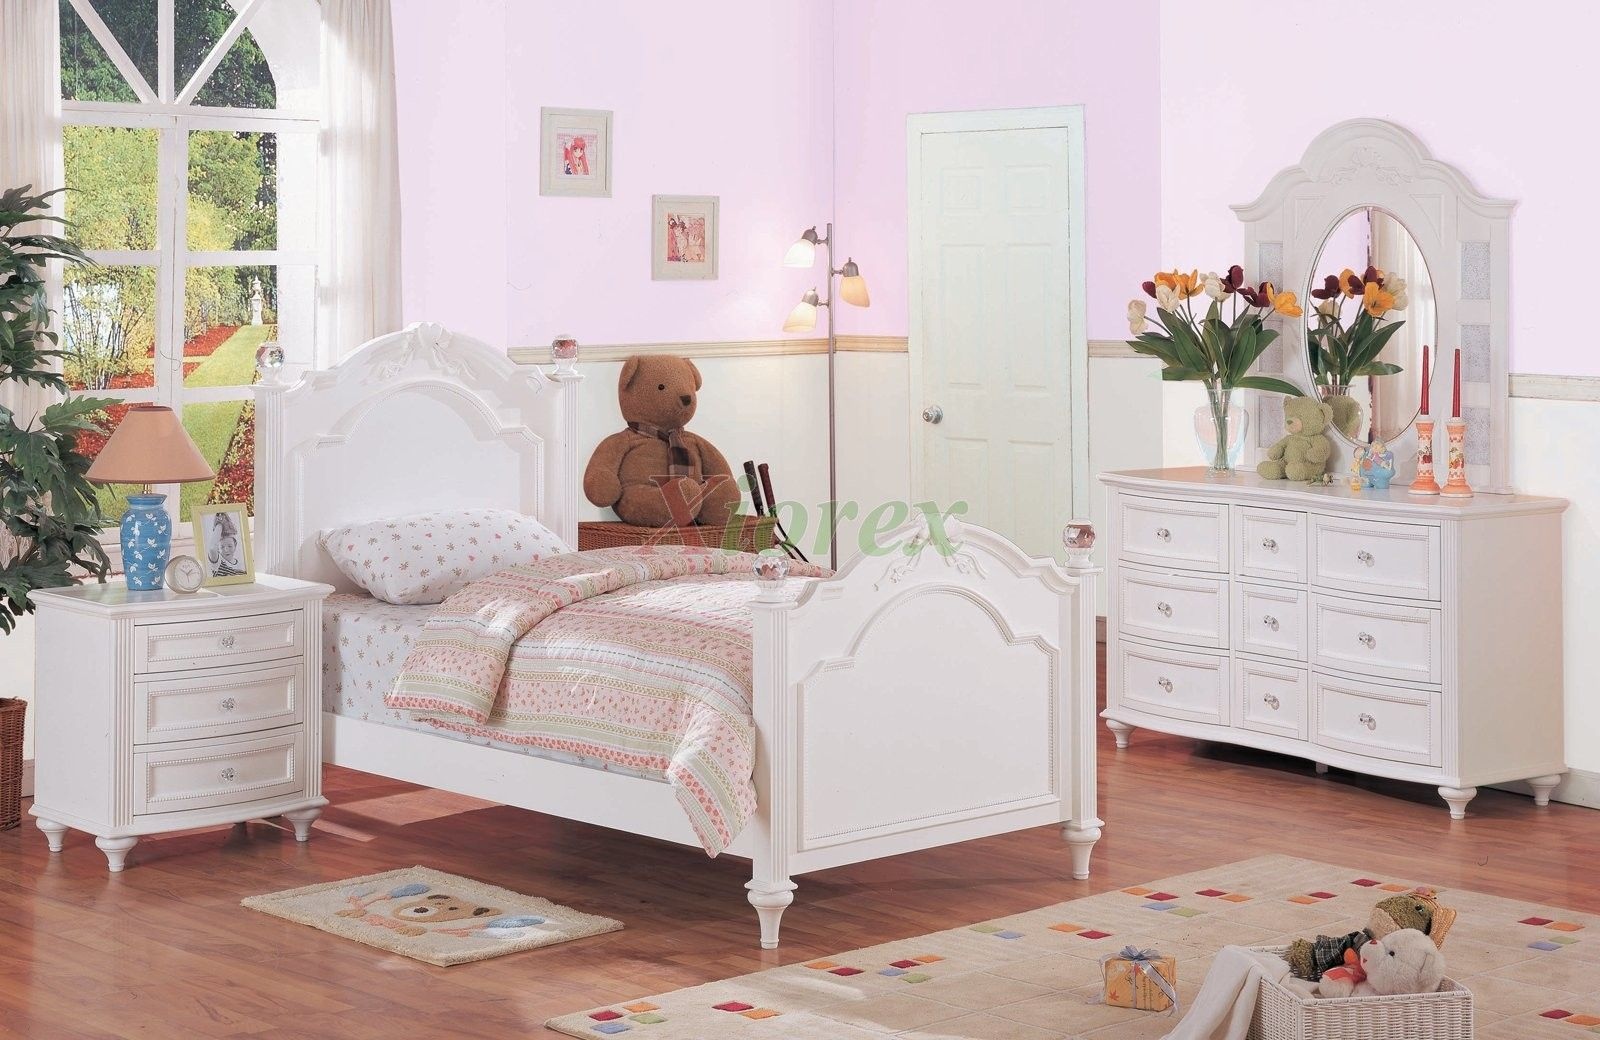 cheap bedroom furniture sets house pinterest cheap bedroom furniture sets cheap bedroom furniture and furniture sets